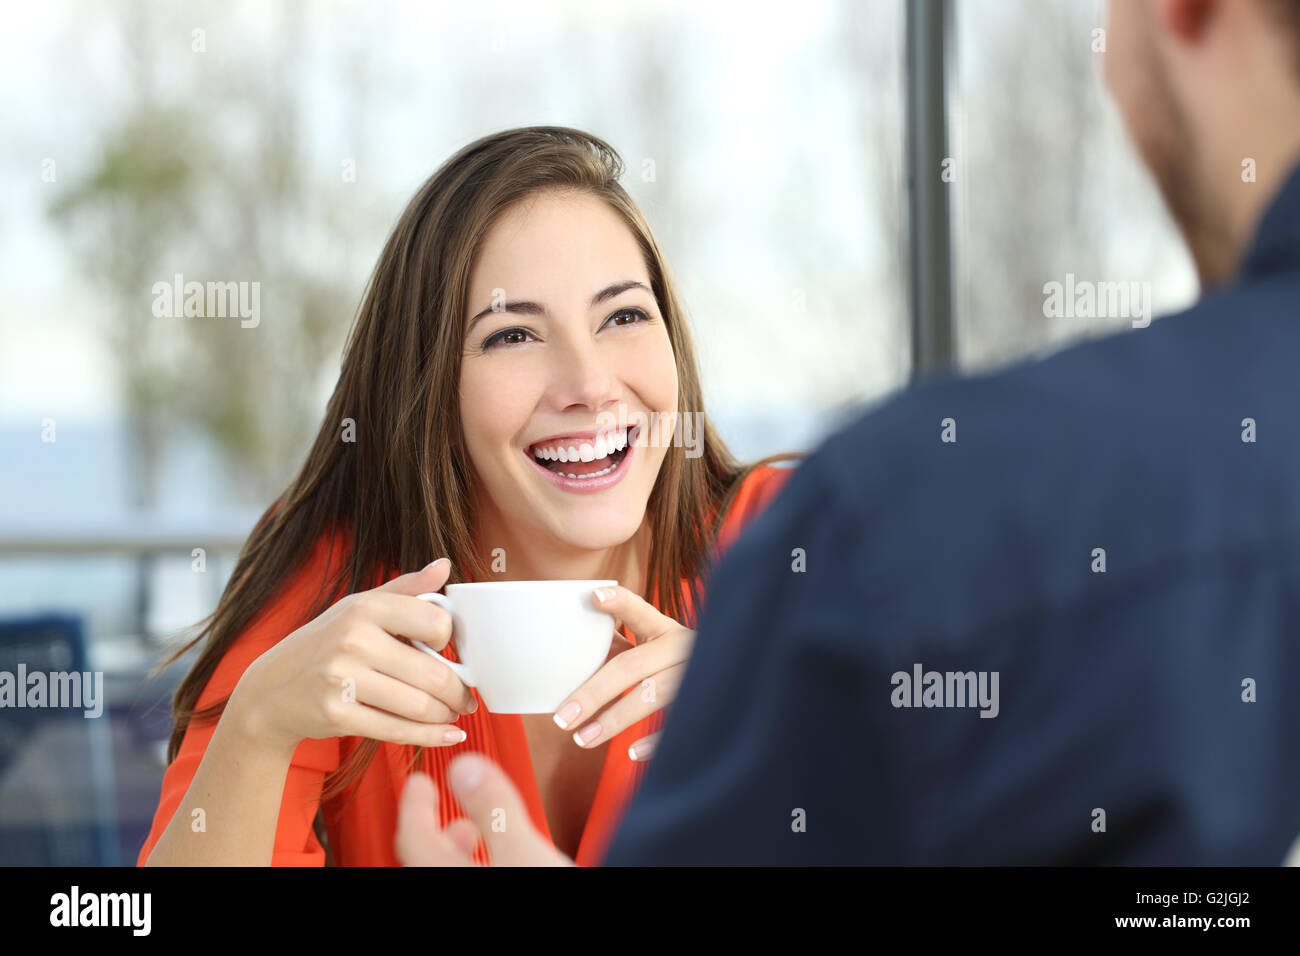 Happy woman dating in a coffee shop looking at her partner and holding a cup - Stock Image